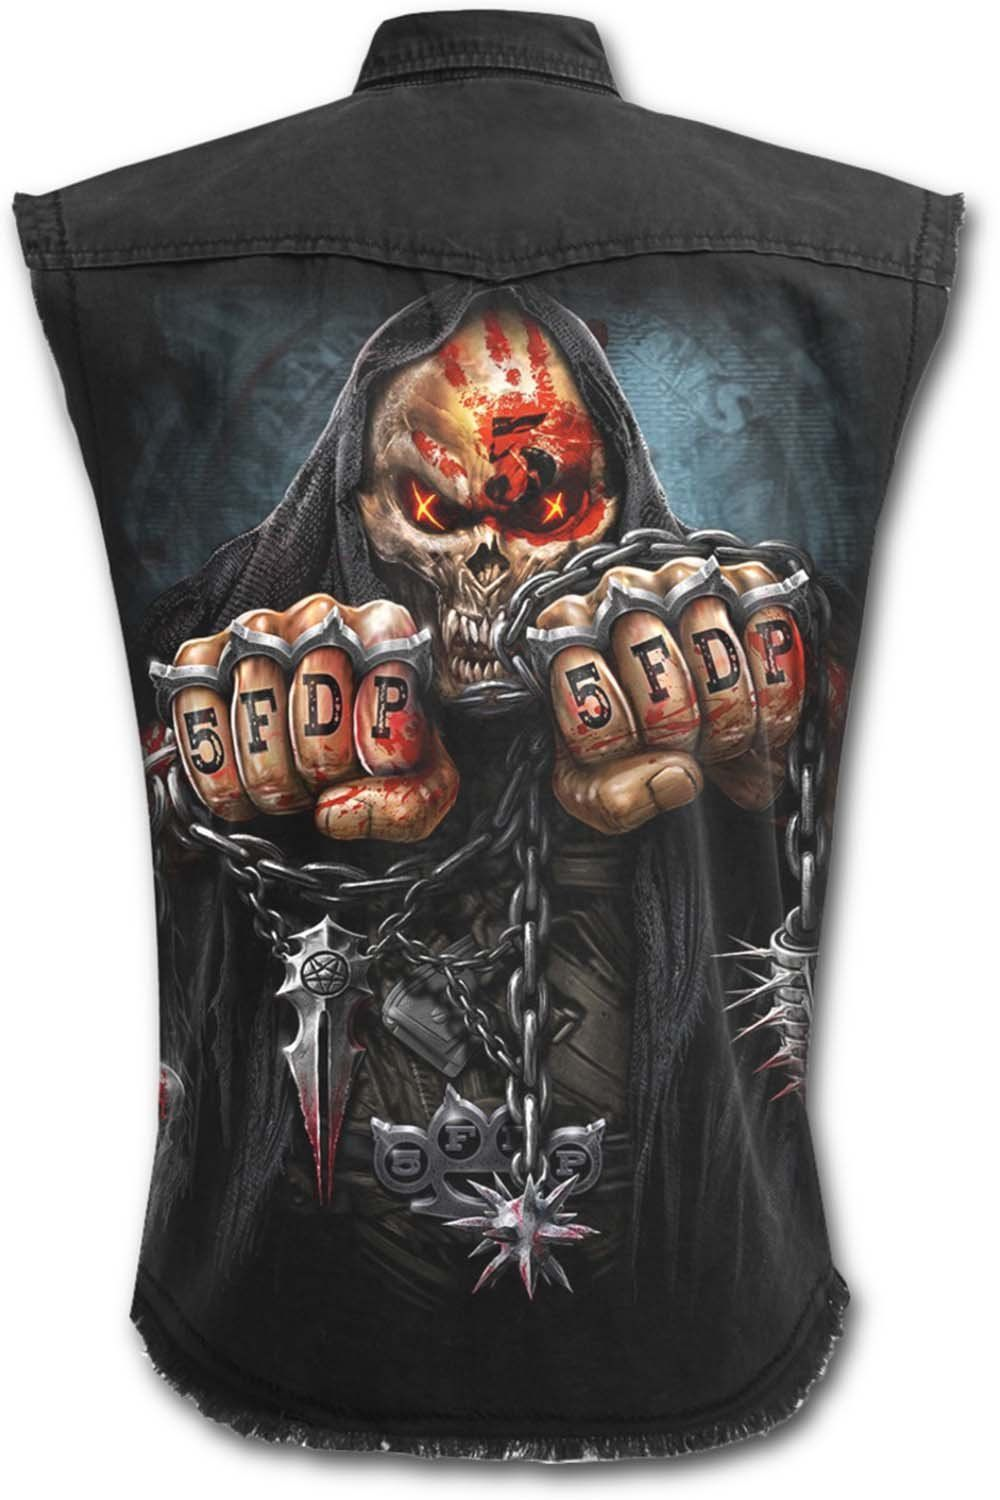 Spiral Direct Never Too Loud Vintage Cargo Shorts Metal Gothic Tattoo Biker